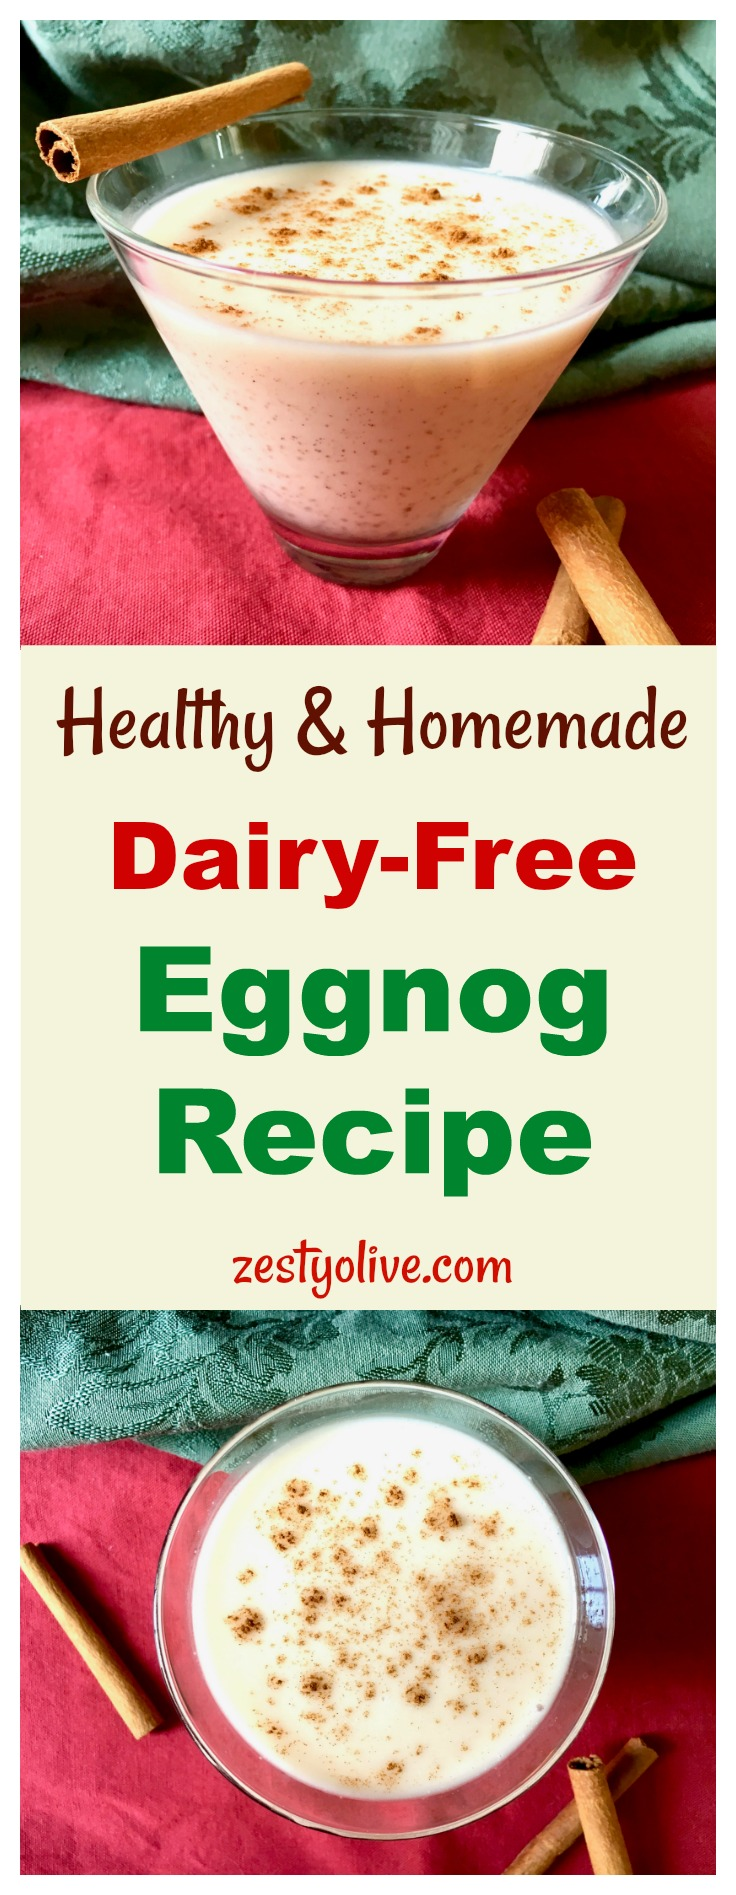 Here's my take on the holiday classic beverage, eggnog. It's my Healthy Homemade Dairy-Free Eggnog Recipe made with coconut milk, organic ingredients and no refined sugar.